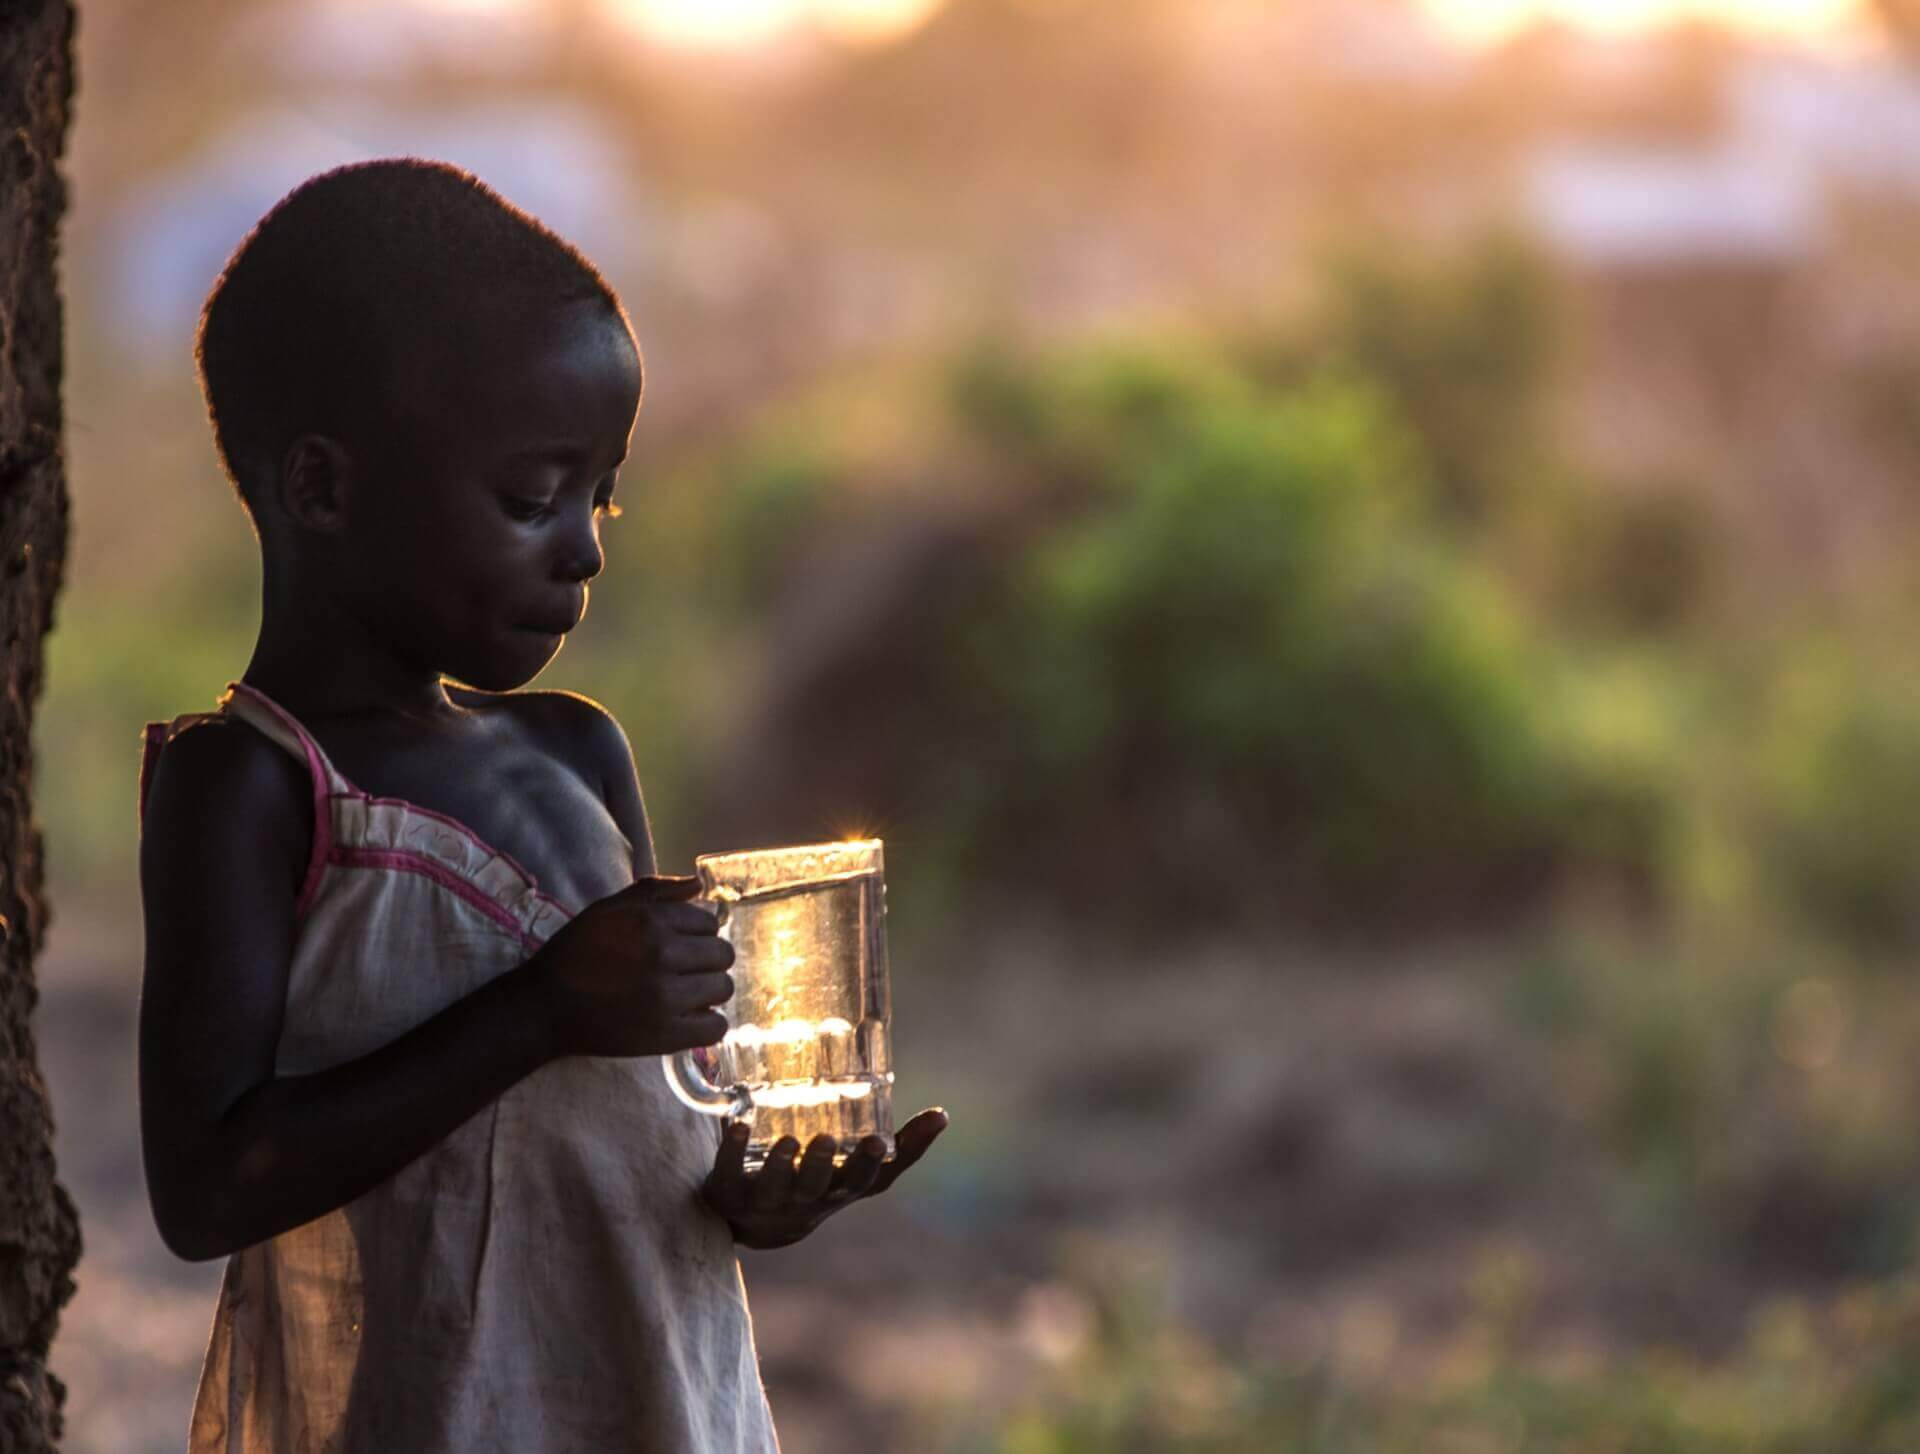 Caritas International 5 million people are in need of help, 275,000 children are malnourished.